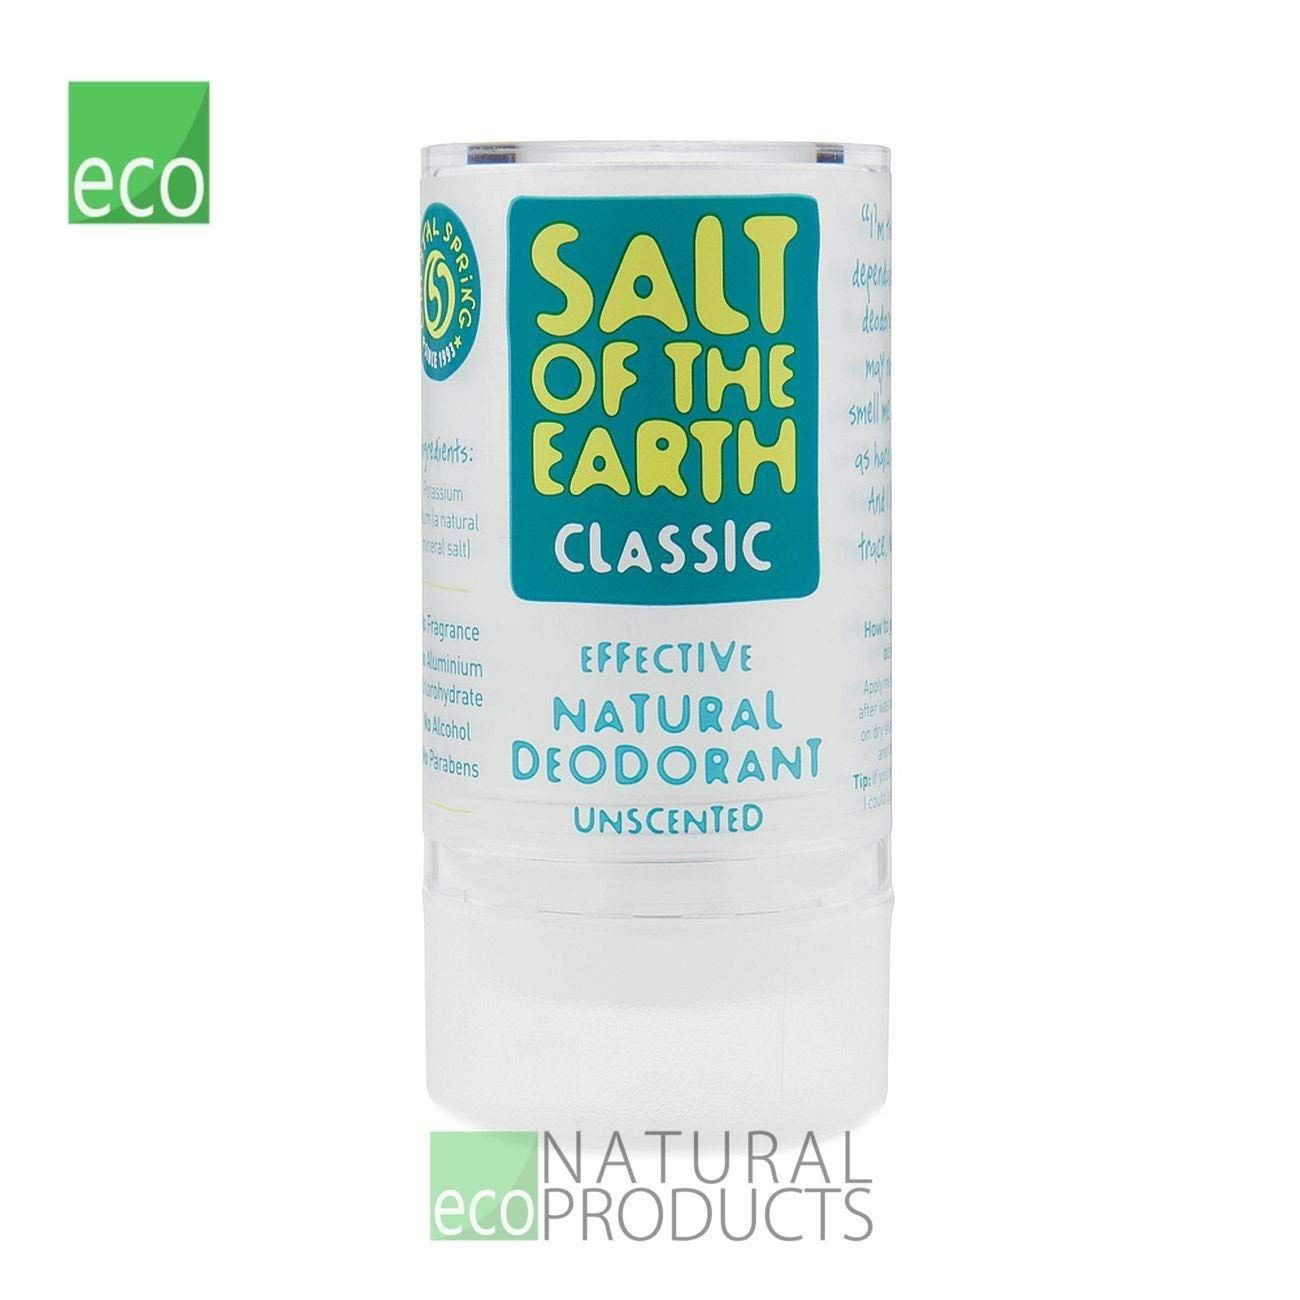 Salt of the Earth Natural Deodorant g Natural deodorant without